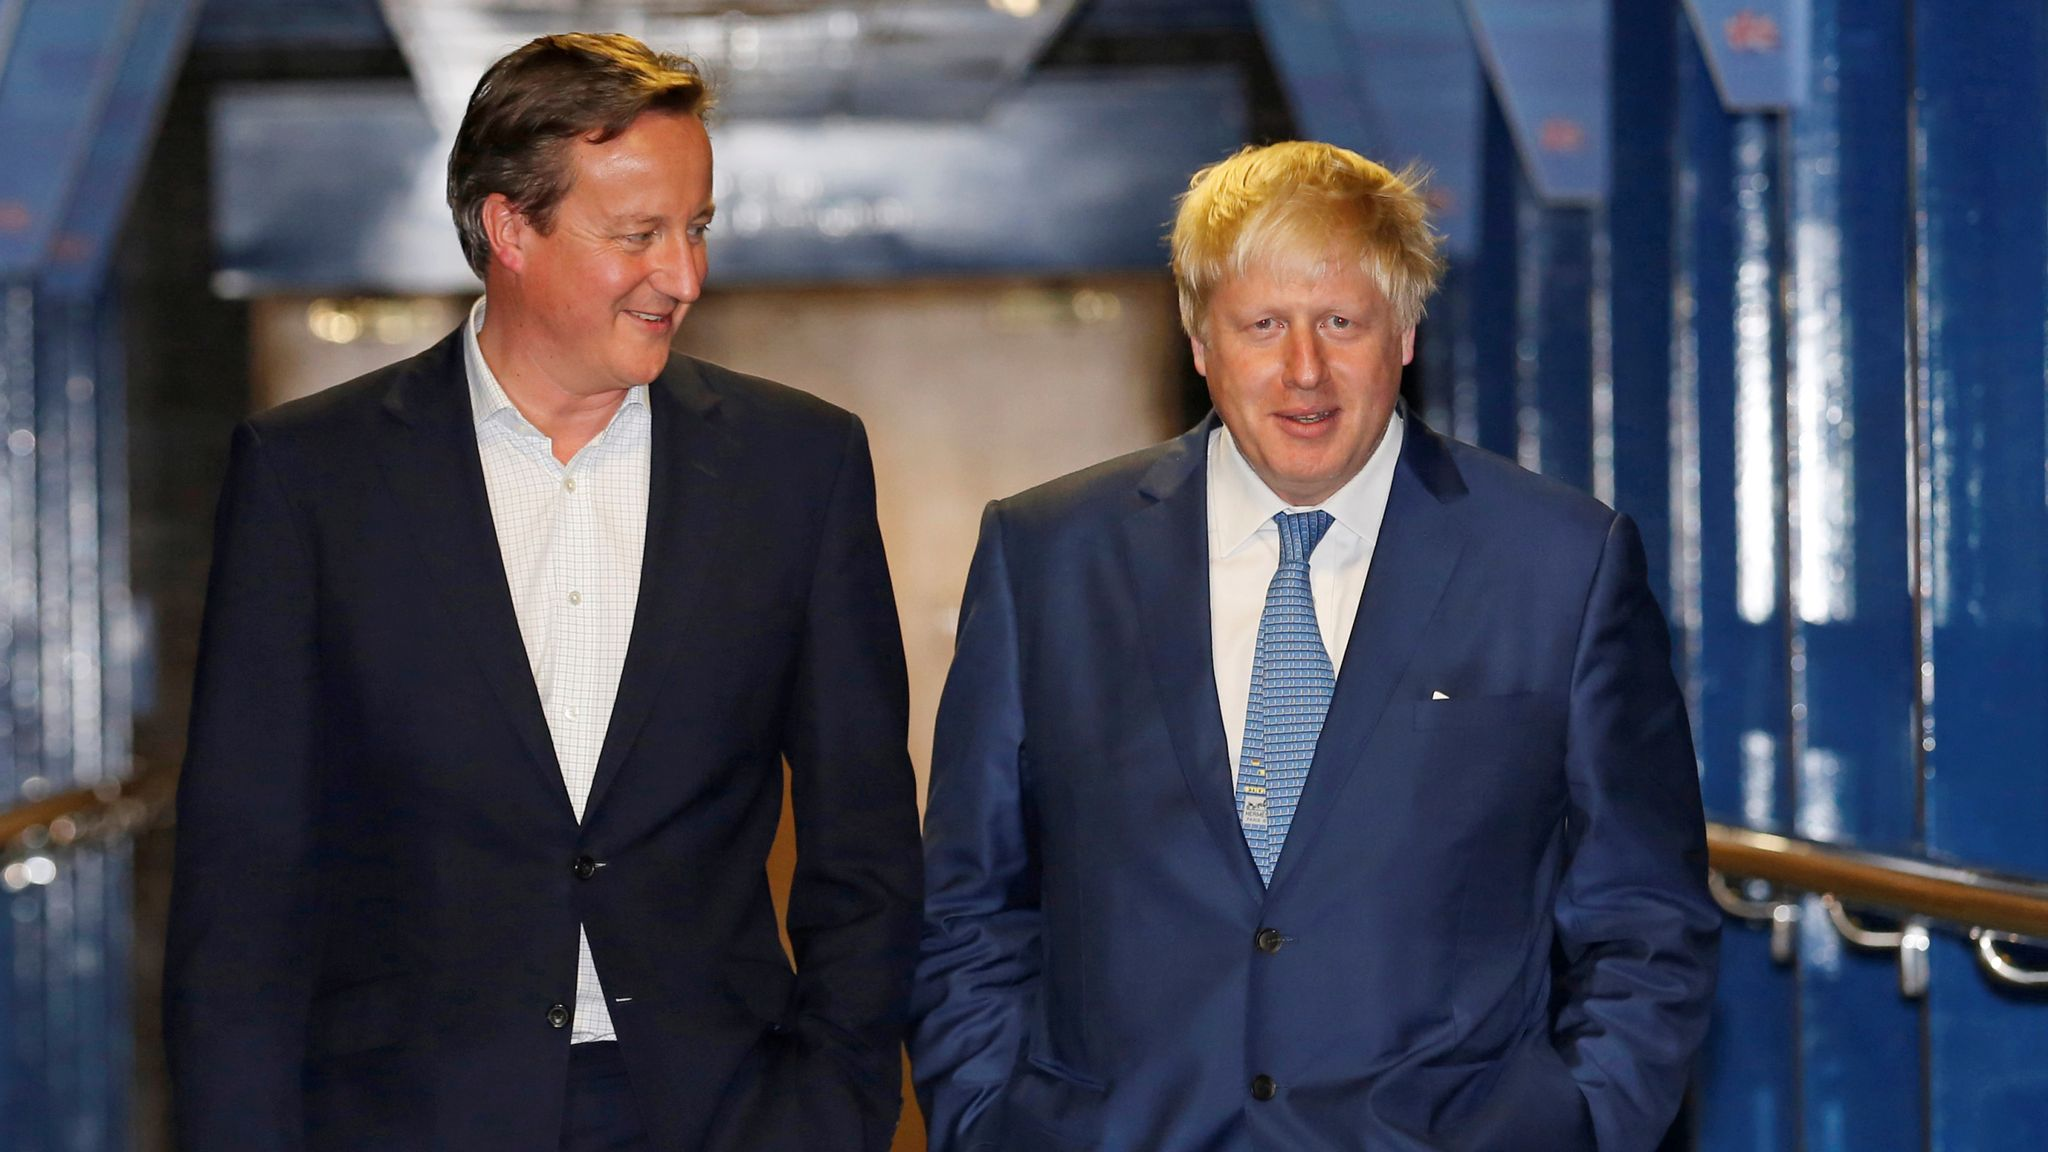 'The greased piglet will slip through' - David Cameron forecasts success for Boris Johnson deal